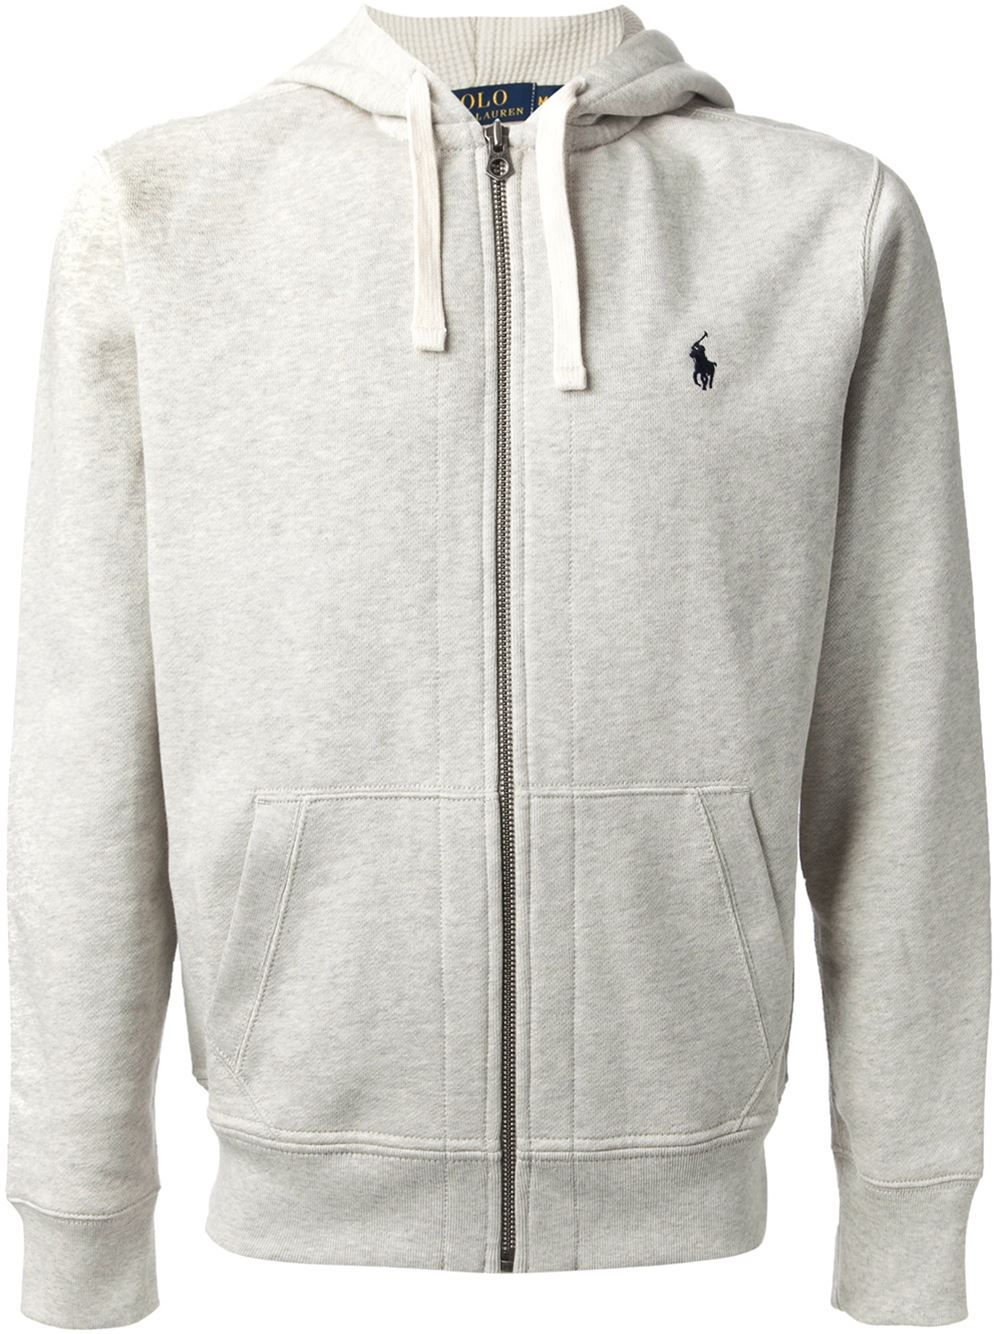 polo ralph lauren zip up hoodie in gray for men lyst. Black Bedroom Furniture Sets. Home Design Ideas